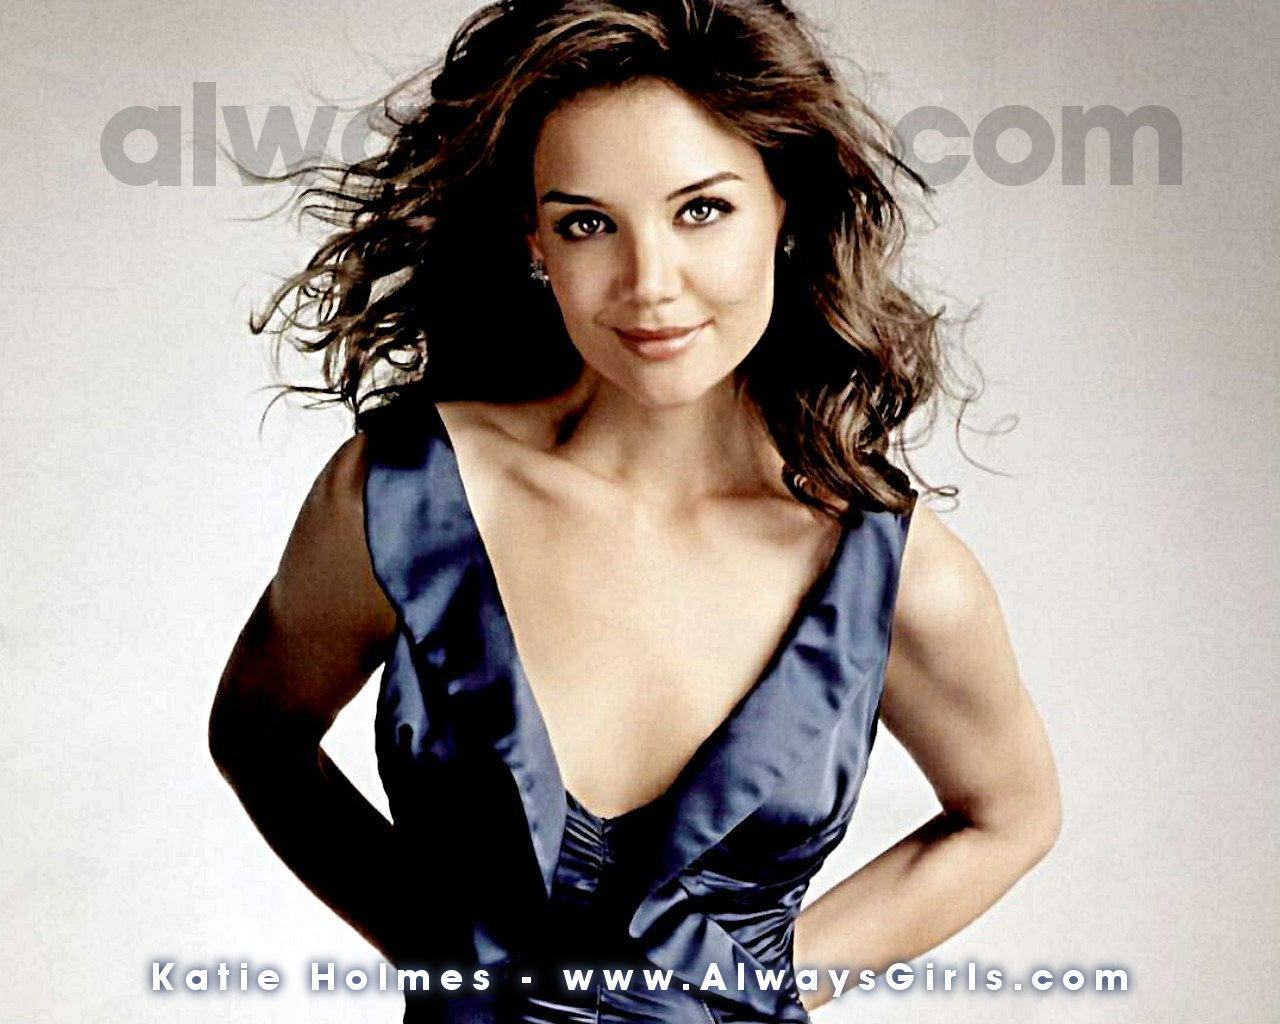 http://images2.fanpop.com/images/photos/5500000/Katie-Holmes-katie-holmes-5594891-1280-1024.jpg